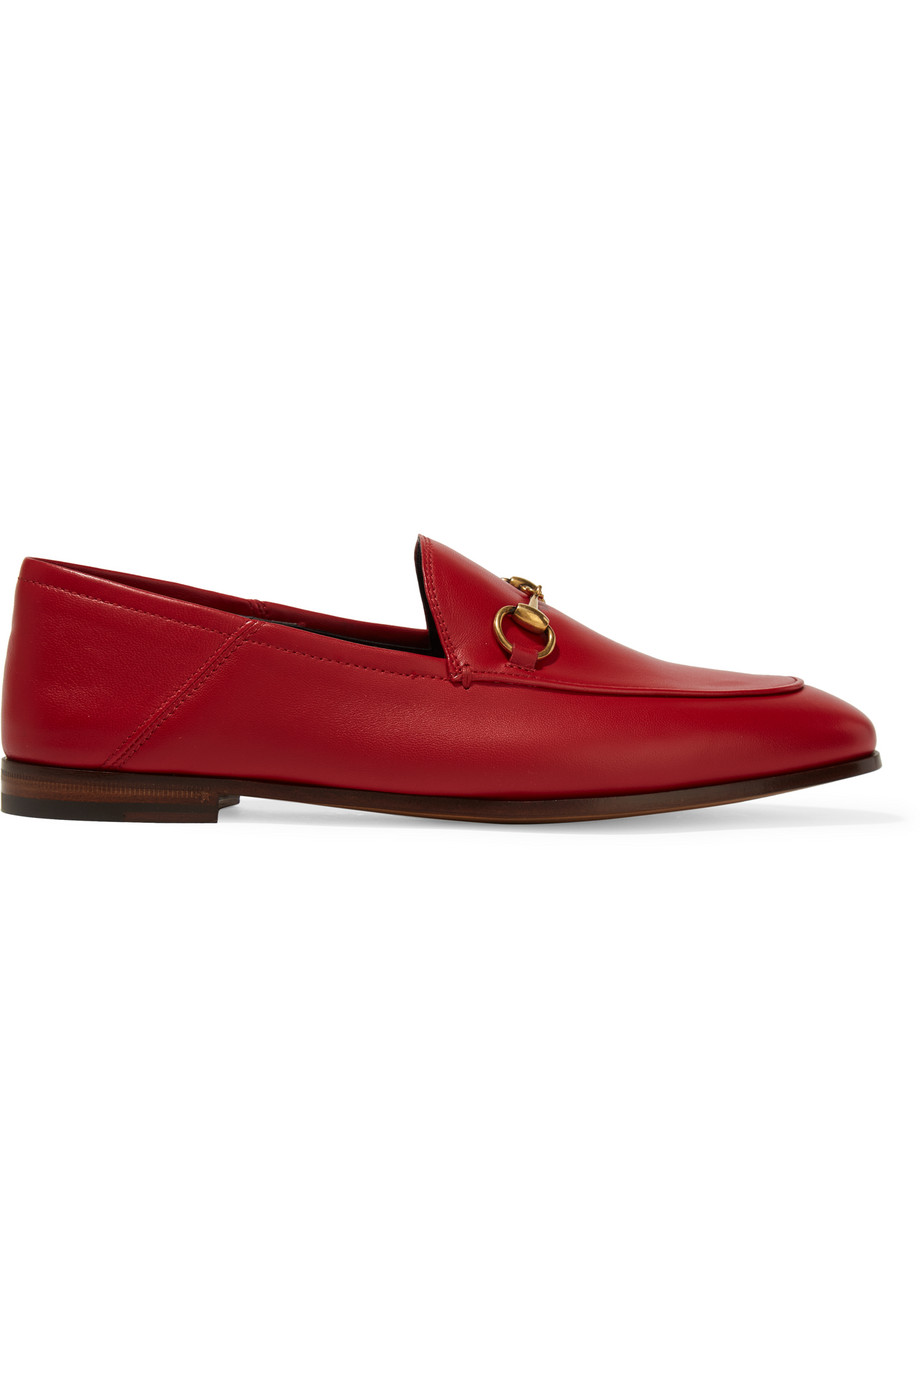 Gucci Horsebit-Detailed Leather Loafers, Red, Women's US Size: 5.5, Size: 36